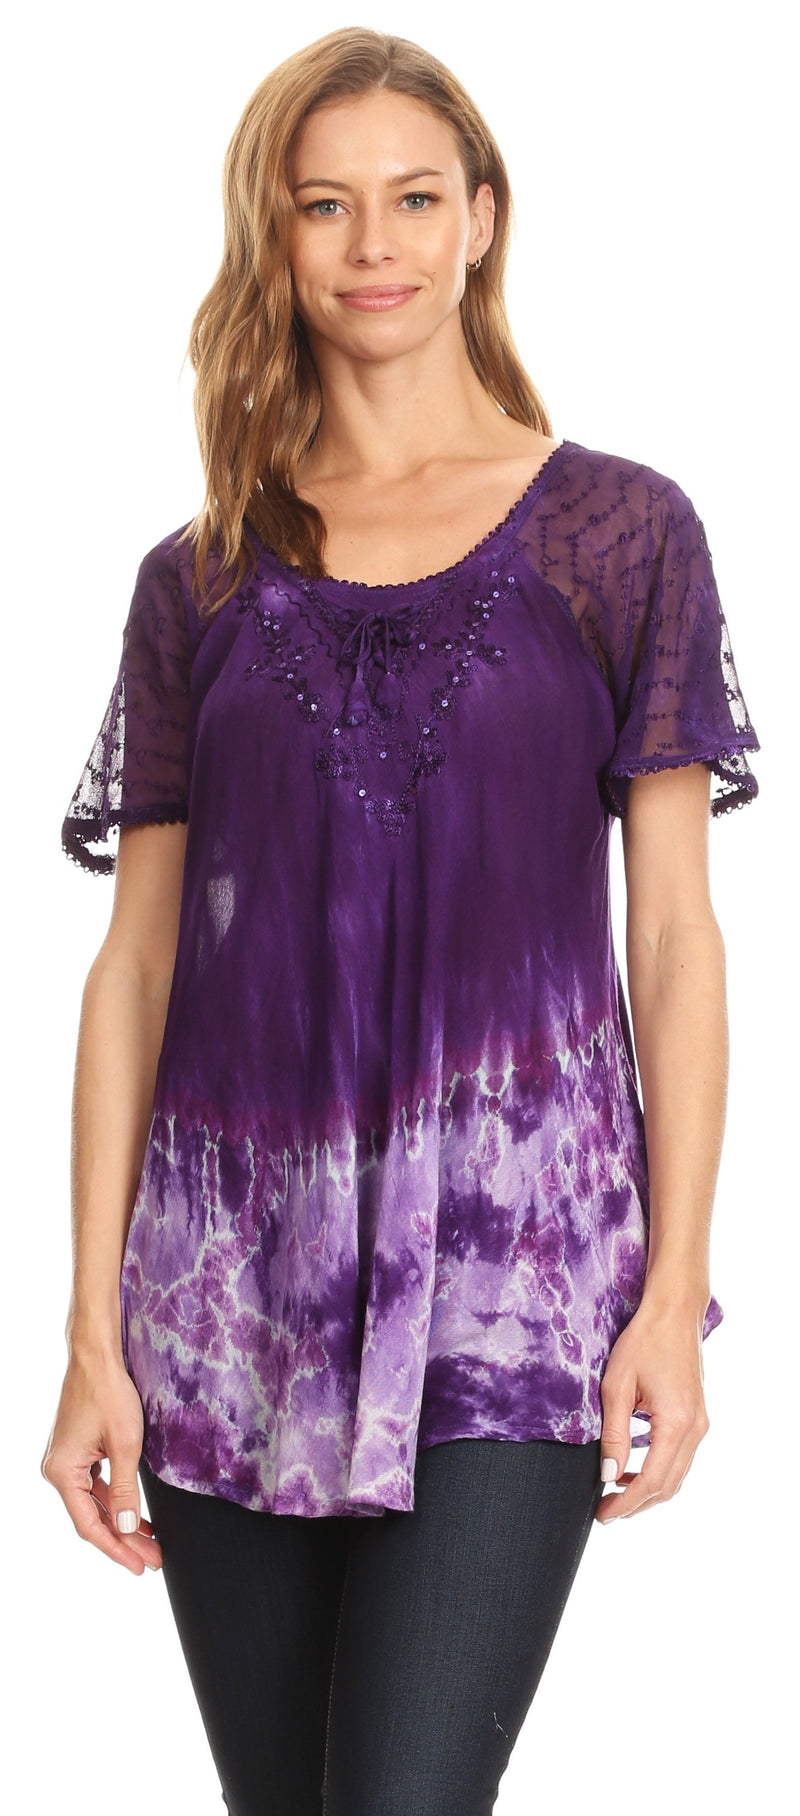 Sakkas Clarice Petite Raglan Lace Up Tie Dye Blouse with Embroidery and Sequins